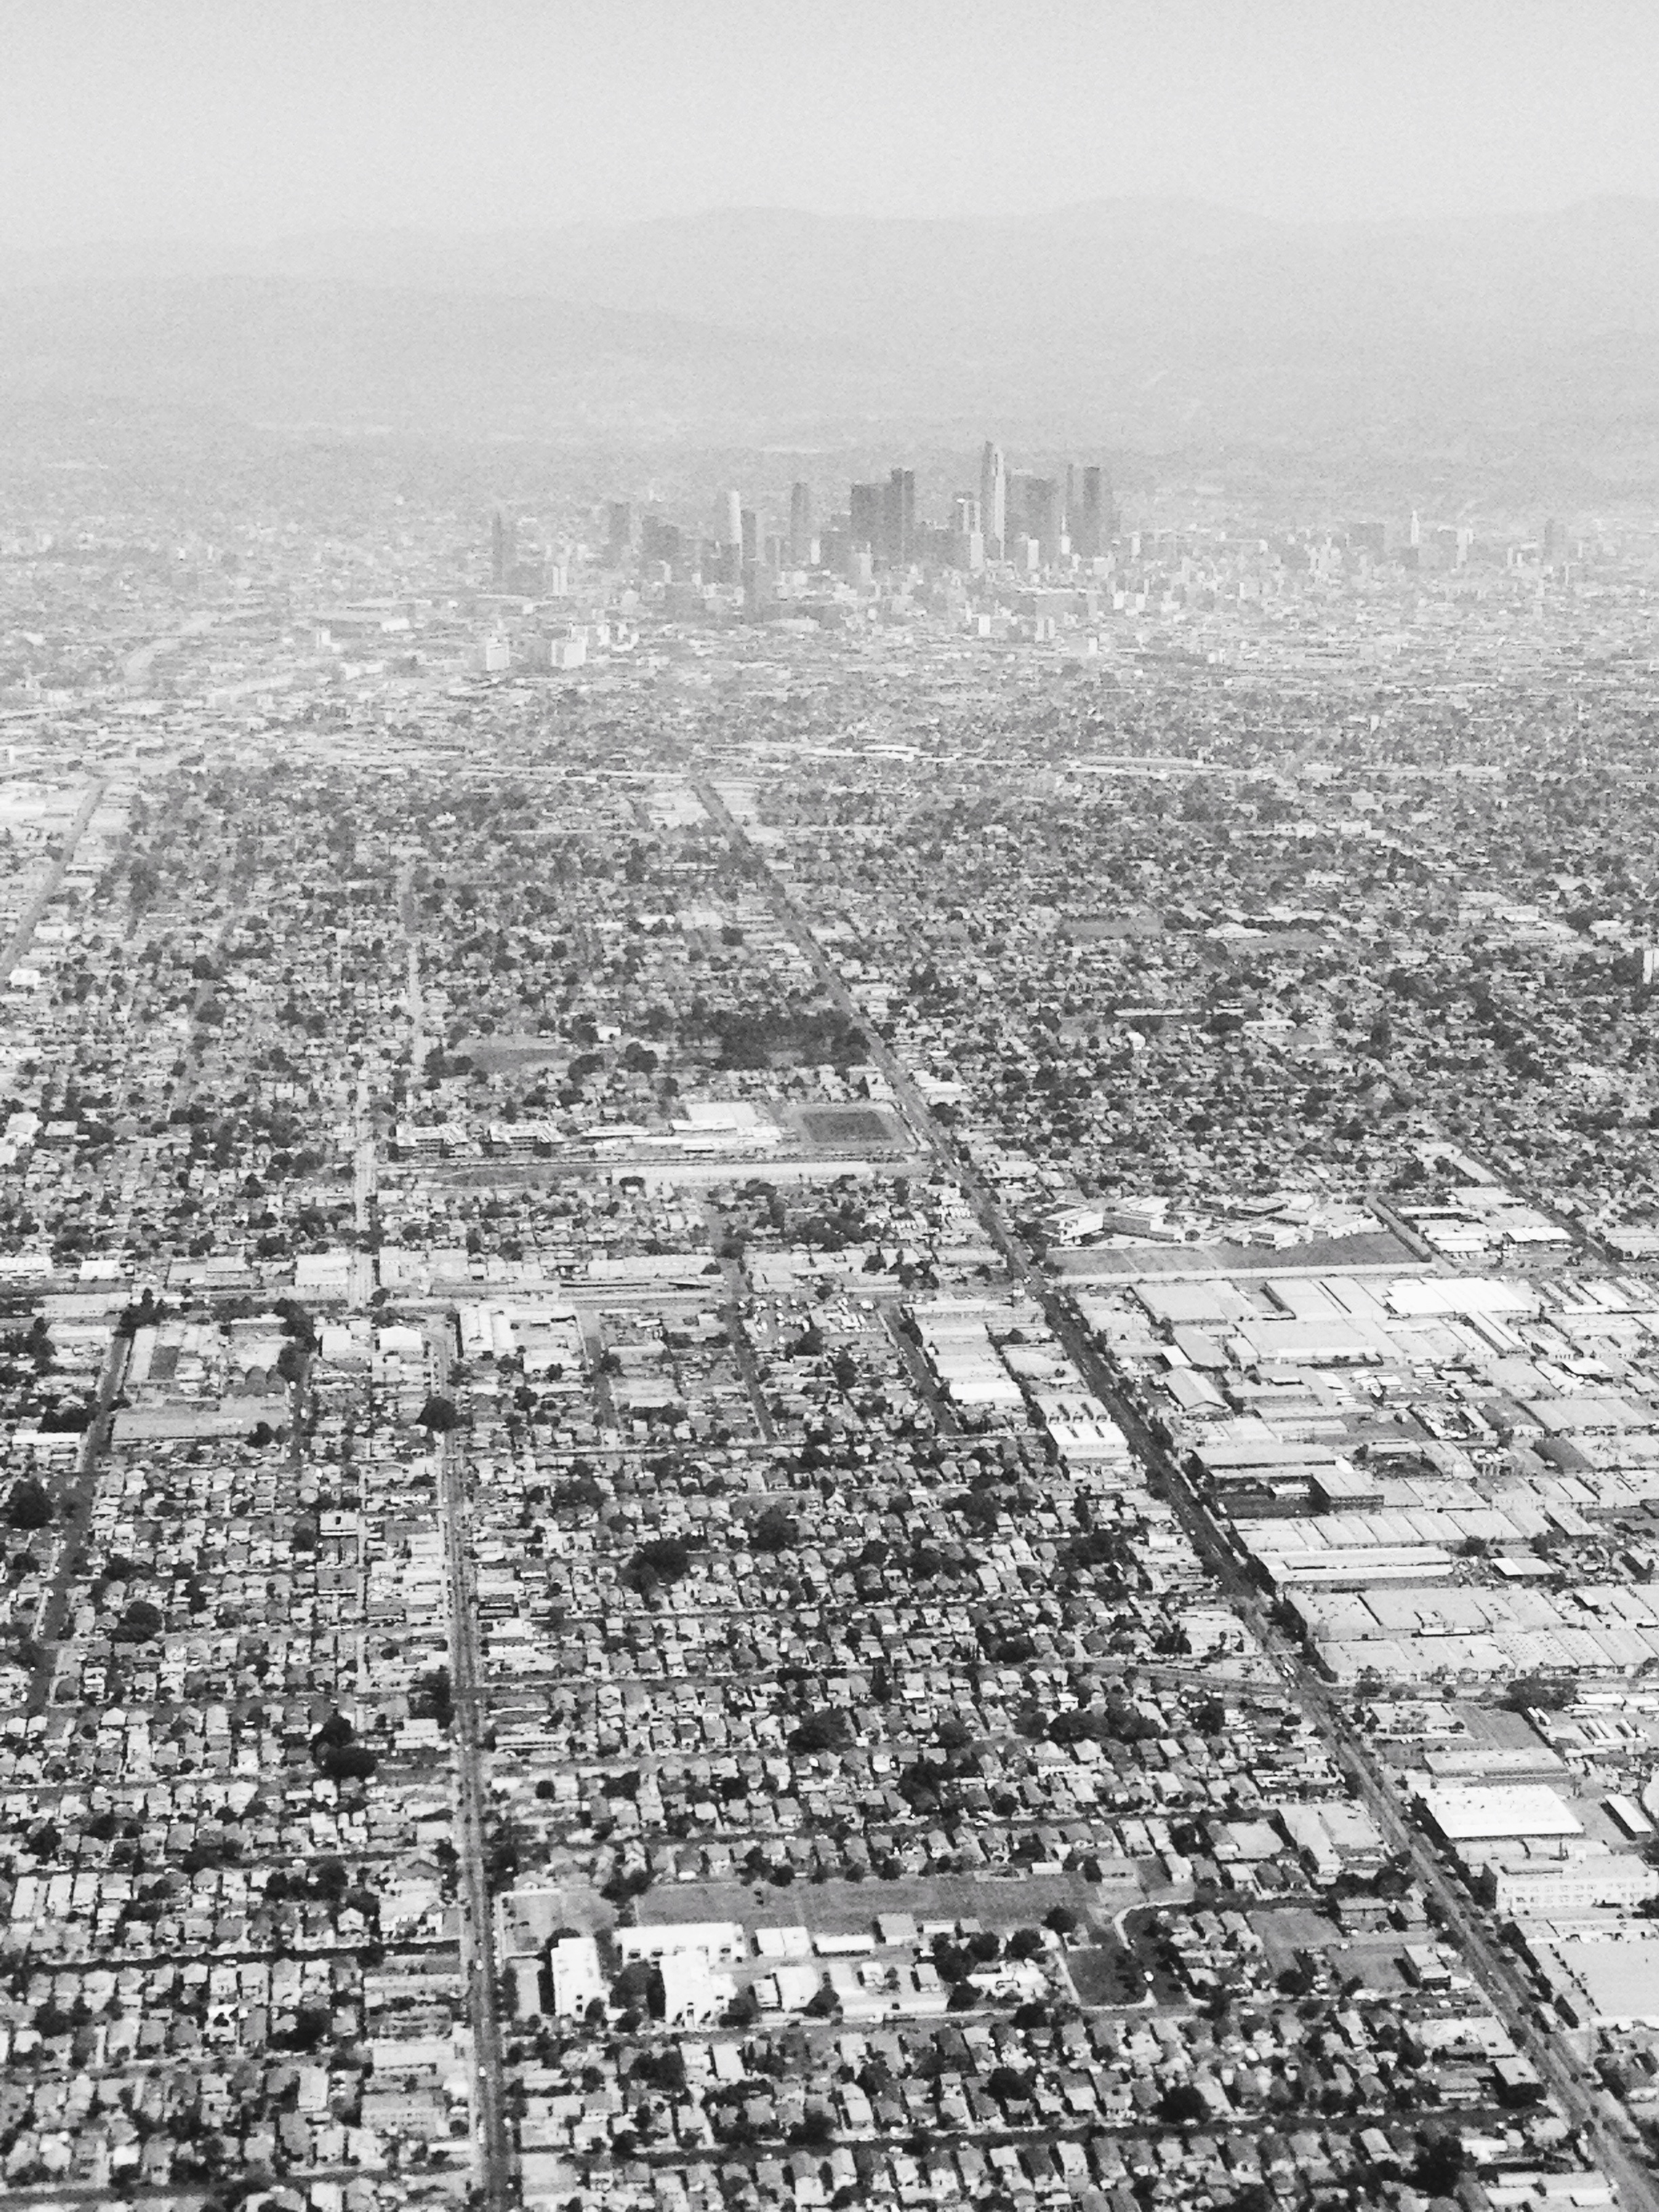 Los Angeles from above. The end of my Indian summer.